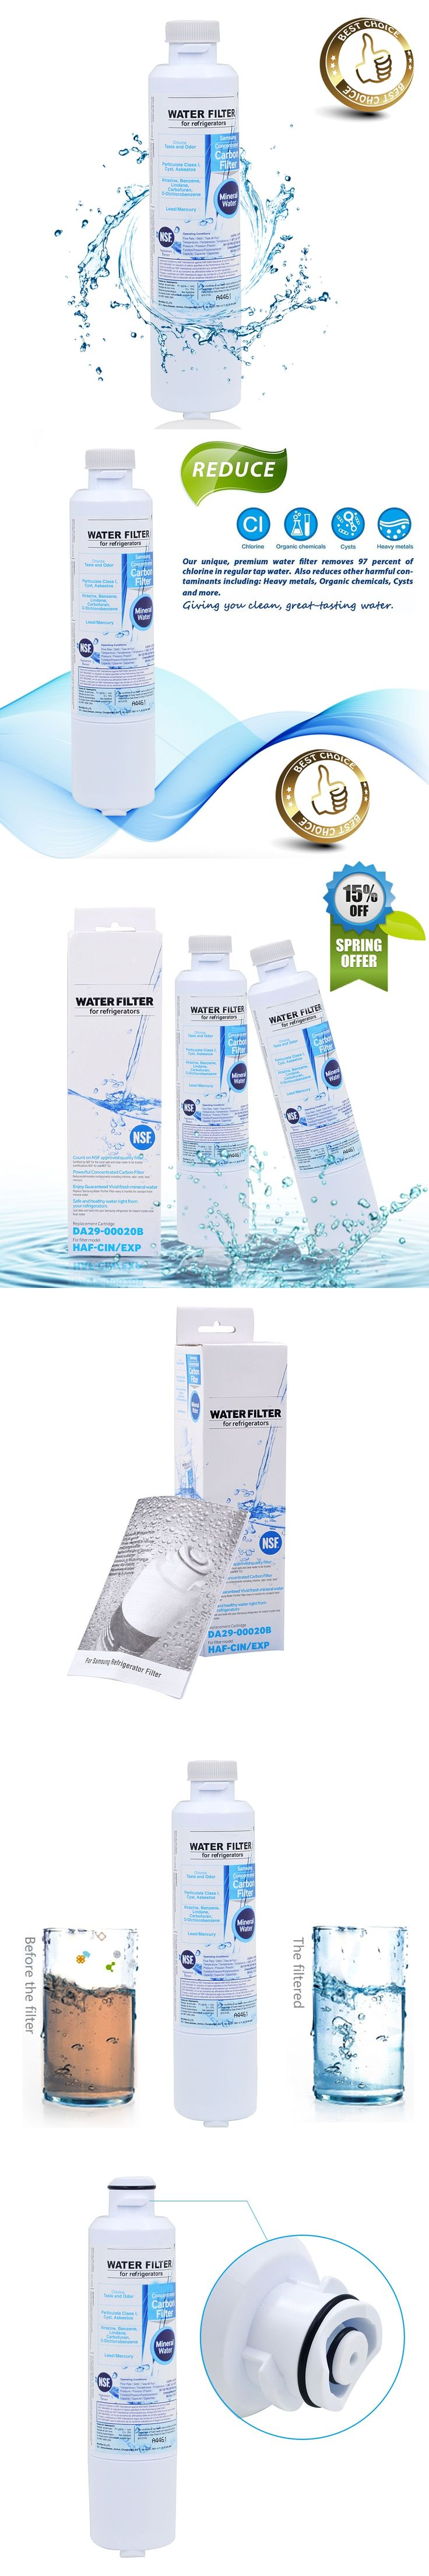 Hot Sale! Refrigerator Water Filter DA29-00020B Activated Carbon Replacement for Samsung DA29-00020B Water Filter 2 Pcs/lot